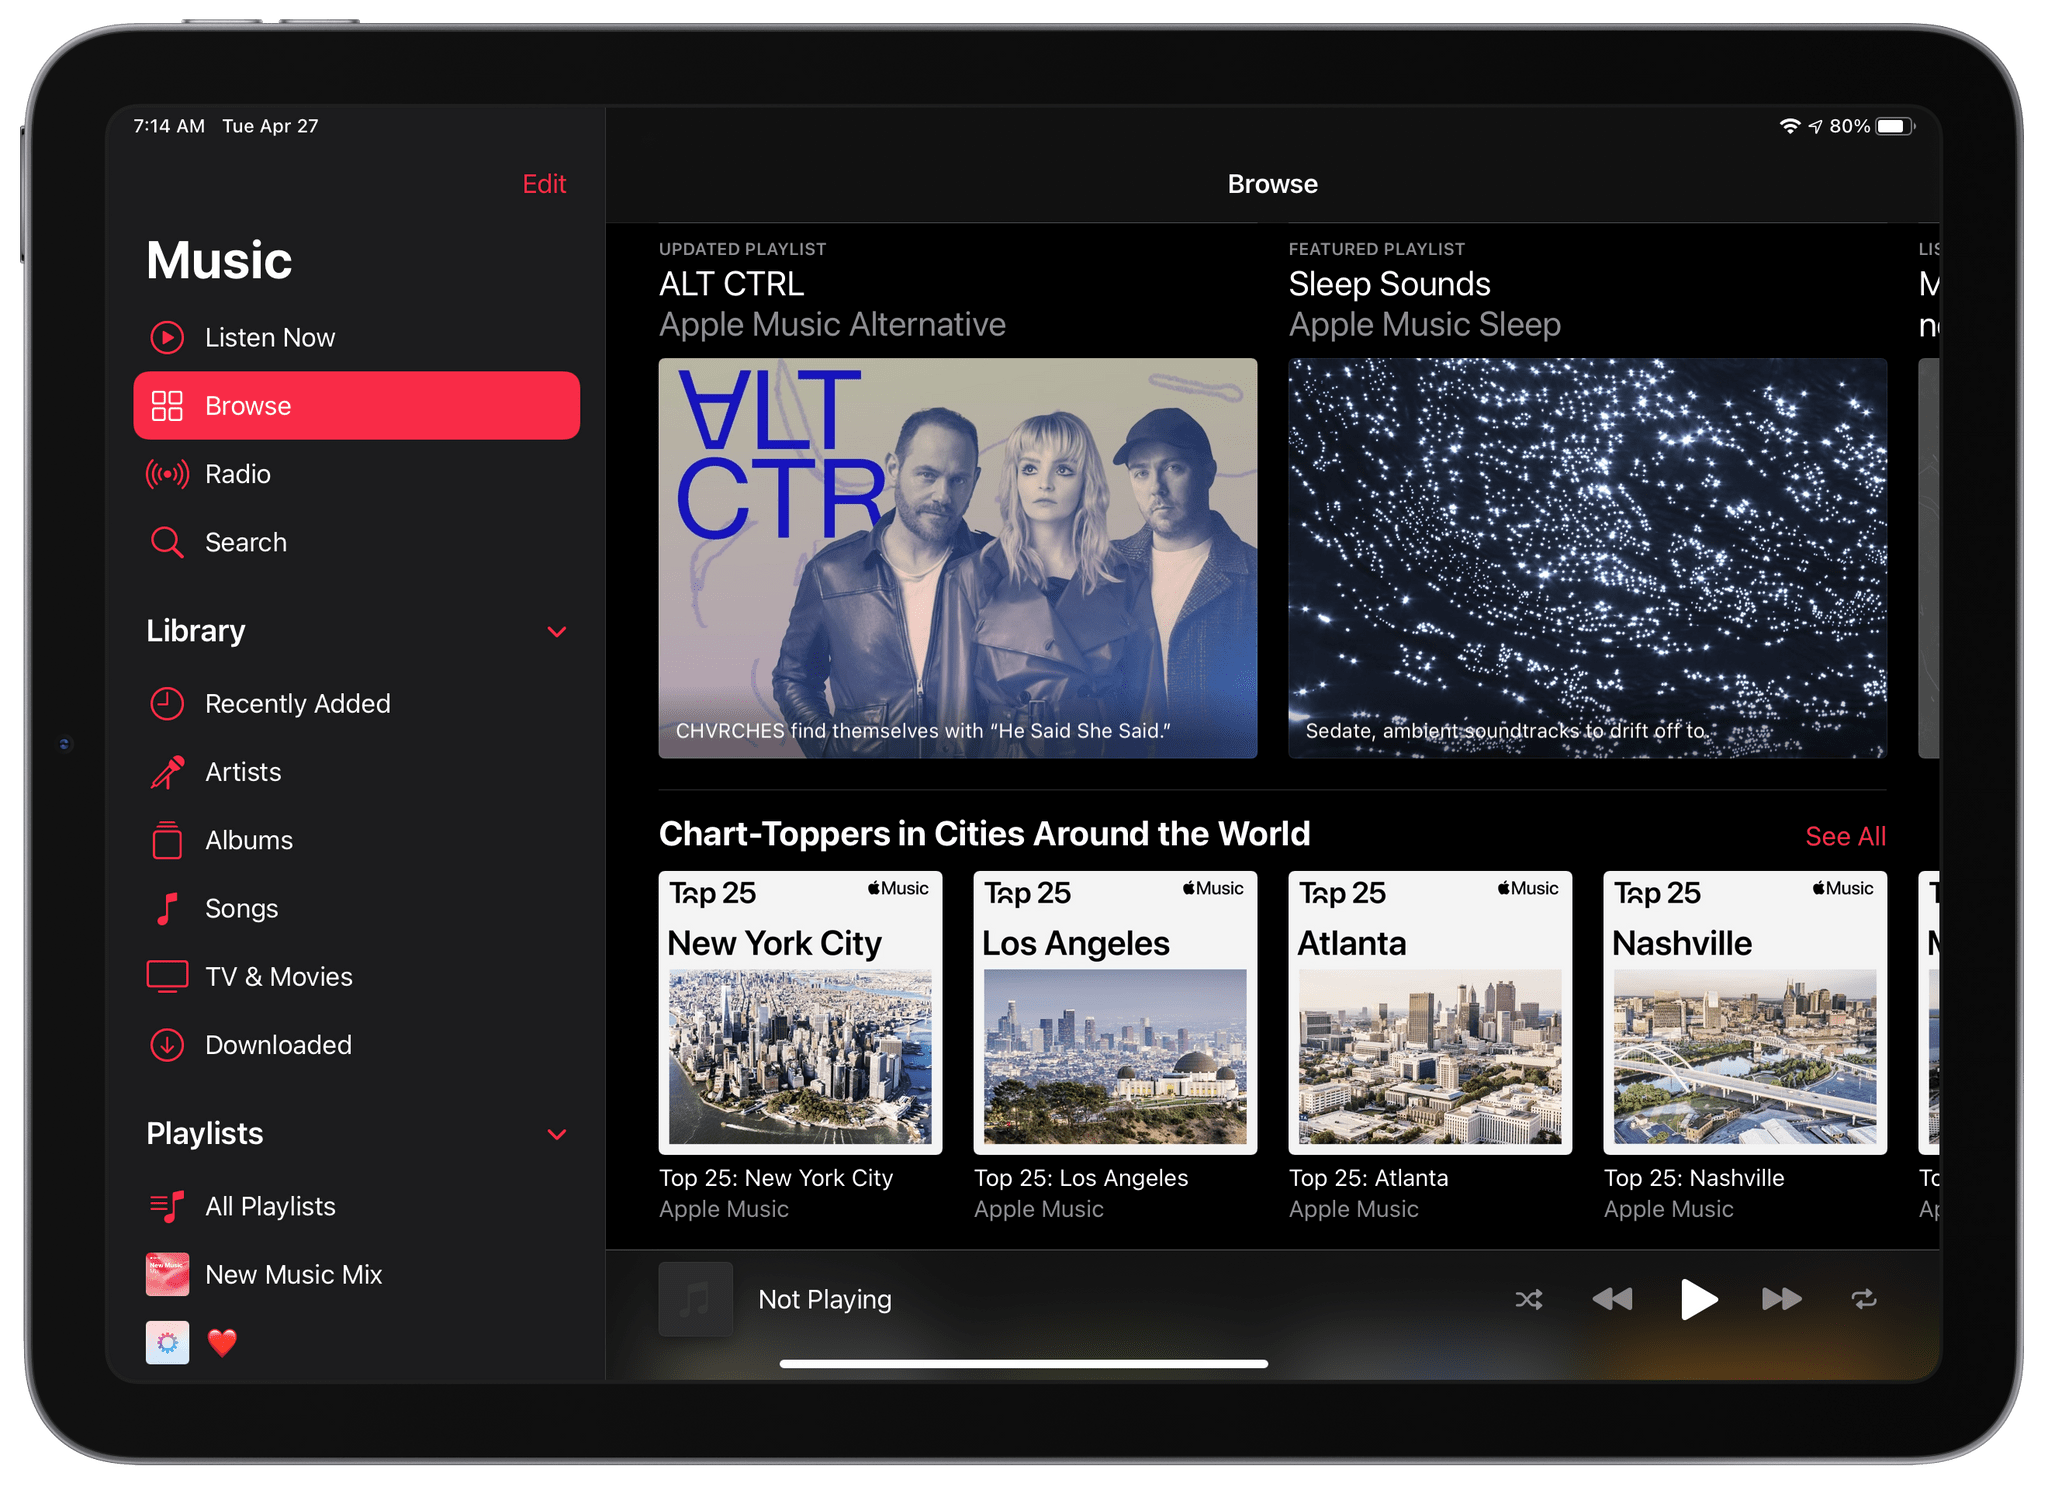 Hands-On With Apple Music's New Collections of Chart-Toppers in Cities Around the World